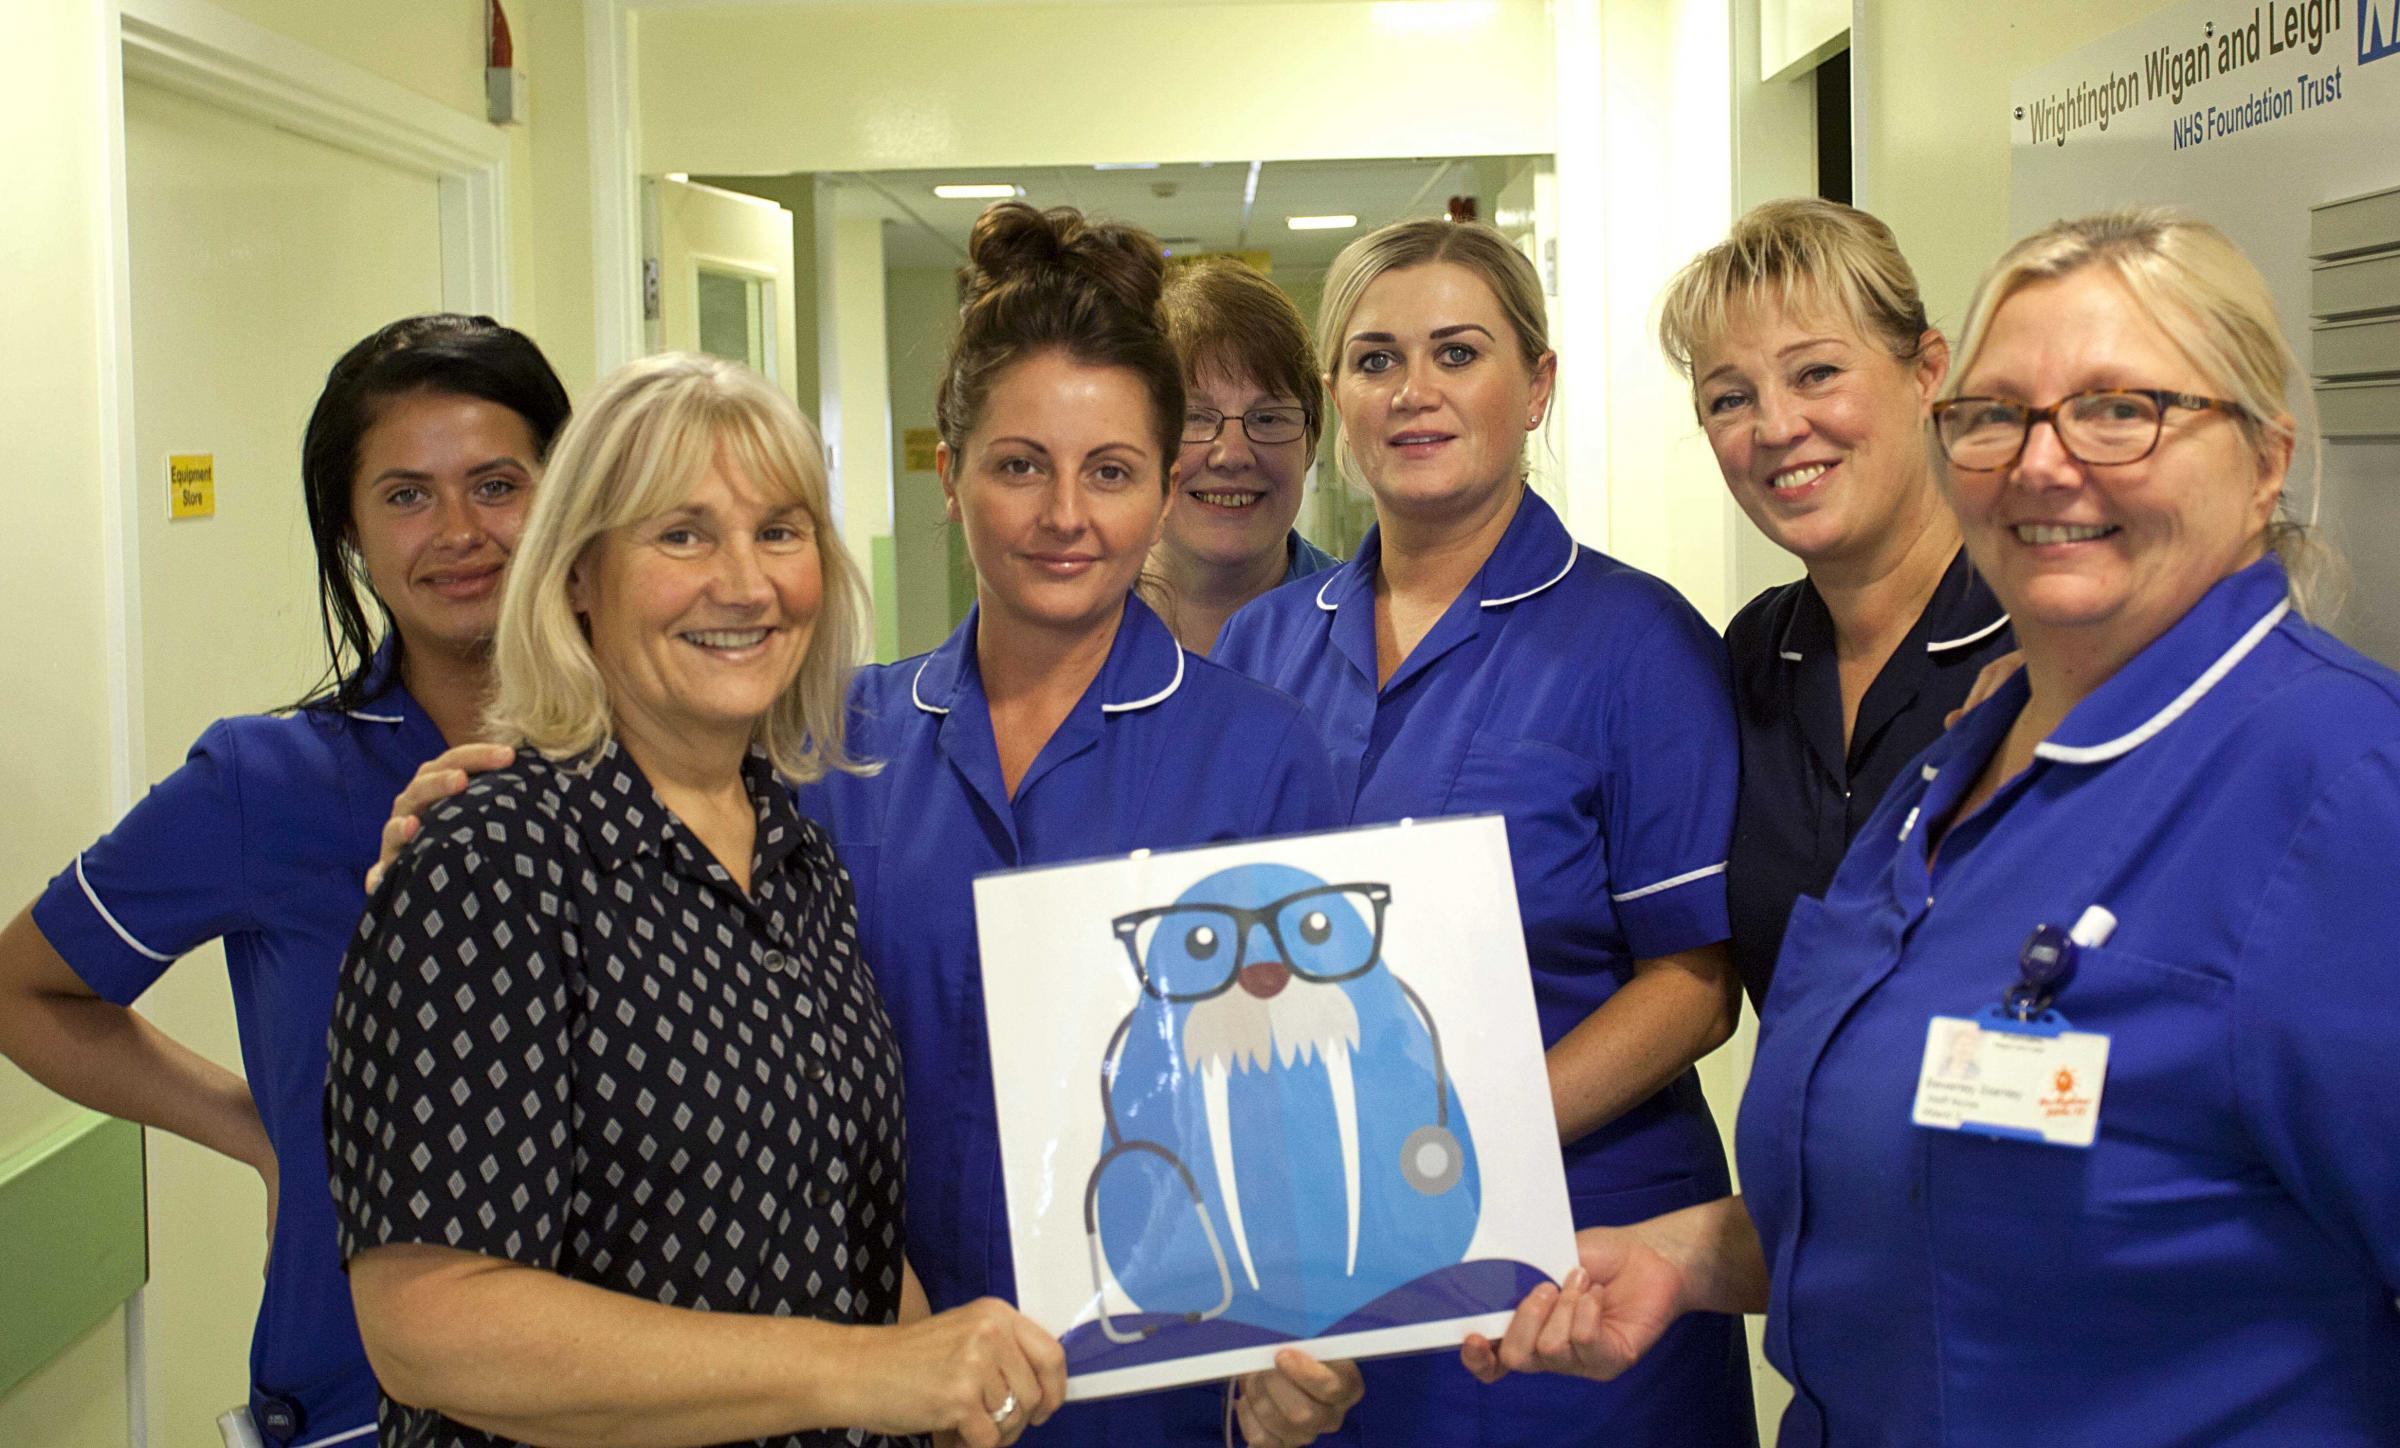 Leigh Infirmary Ward 3 staff with their Wally mascot design